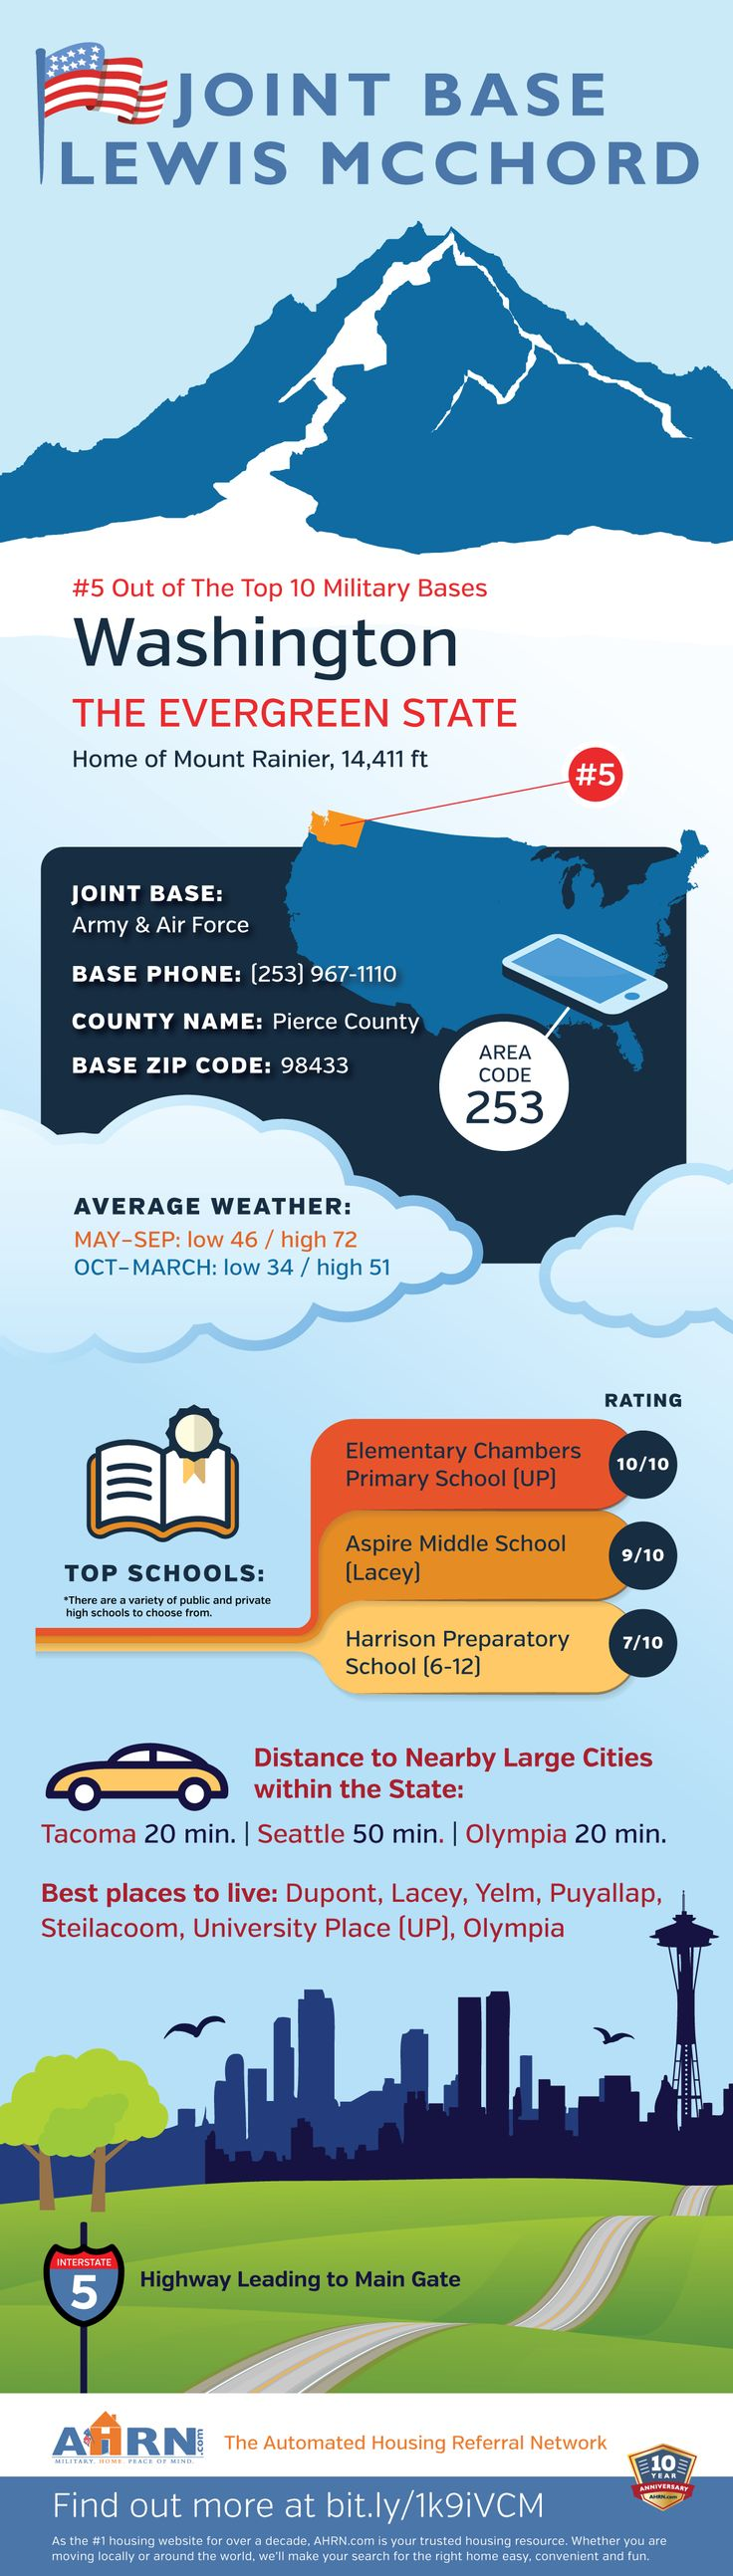 JBLM Essentials at AHRN.com   #infographic Designed for The Red Door Group Marketing & IT.